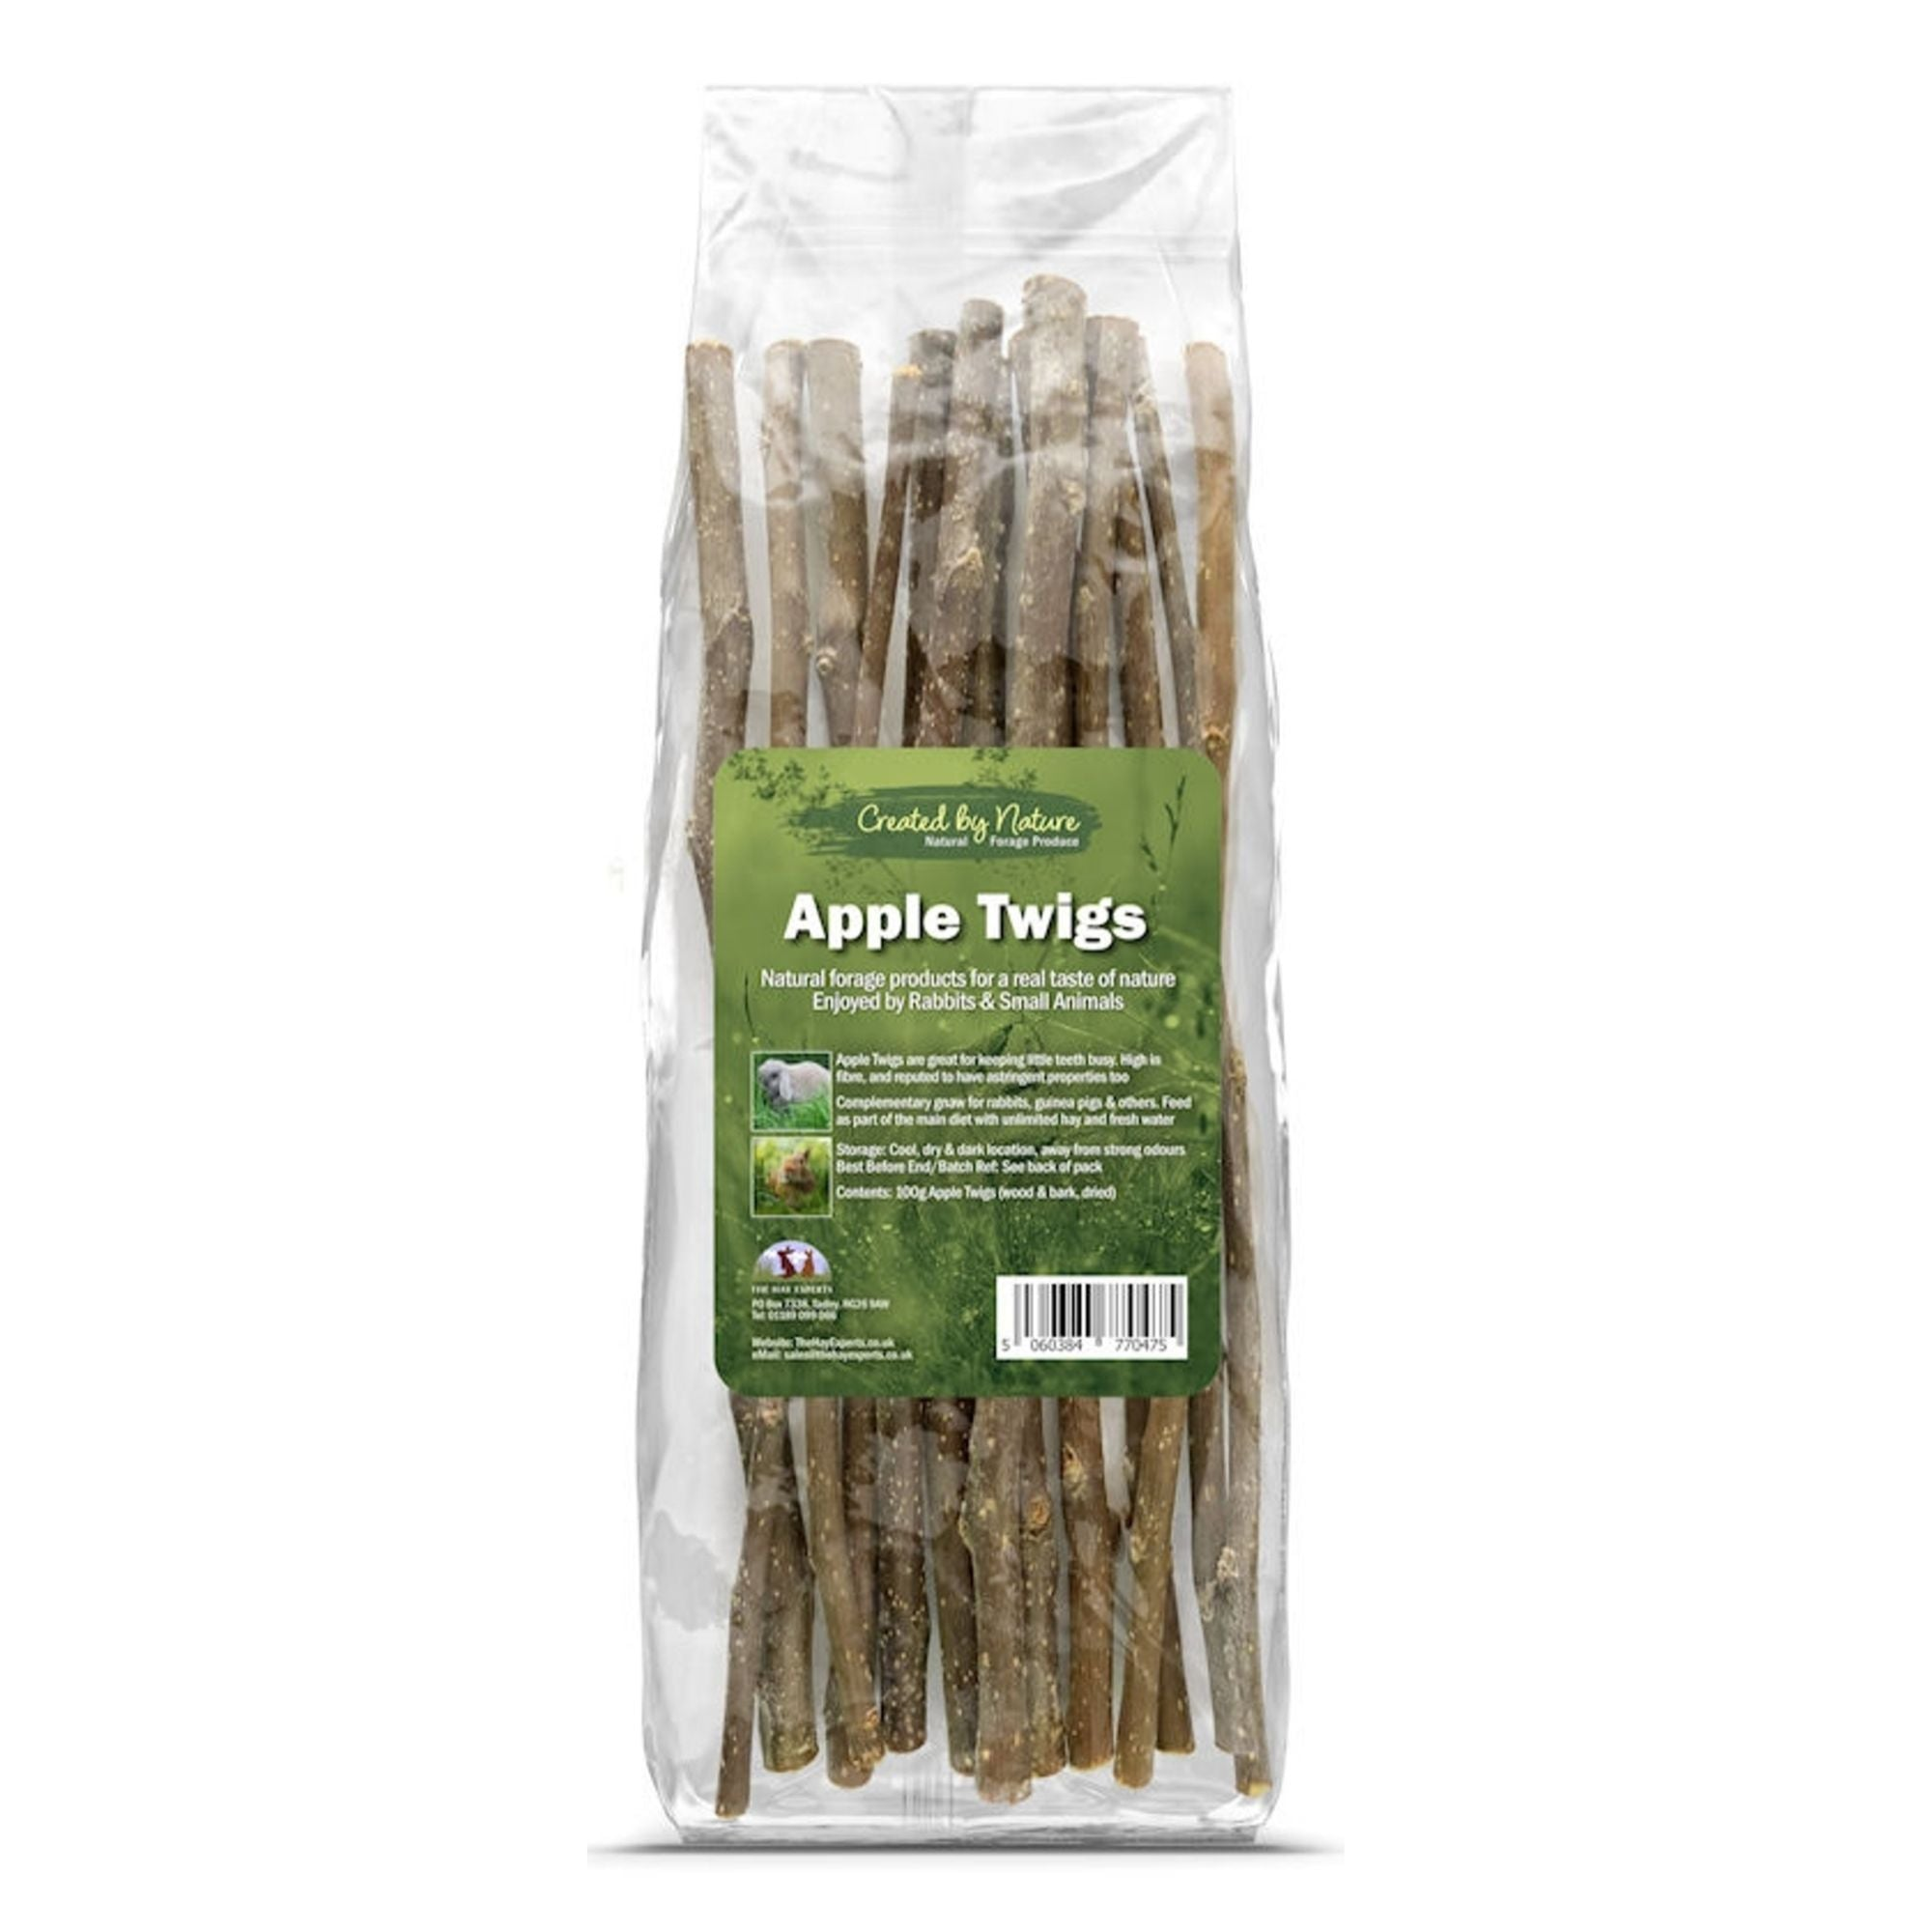 The Hay Experts Apple Twigs, Toys for Rabbits | Barks & Bunnies